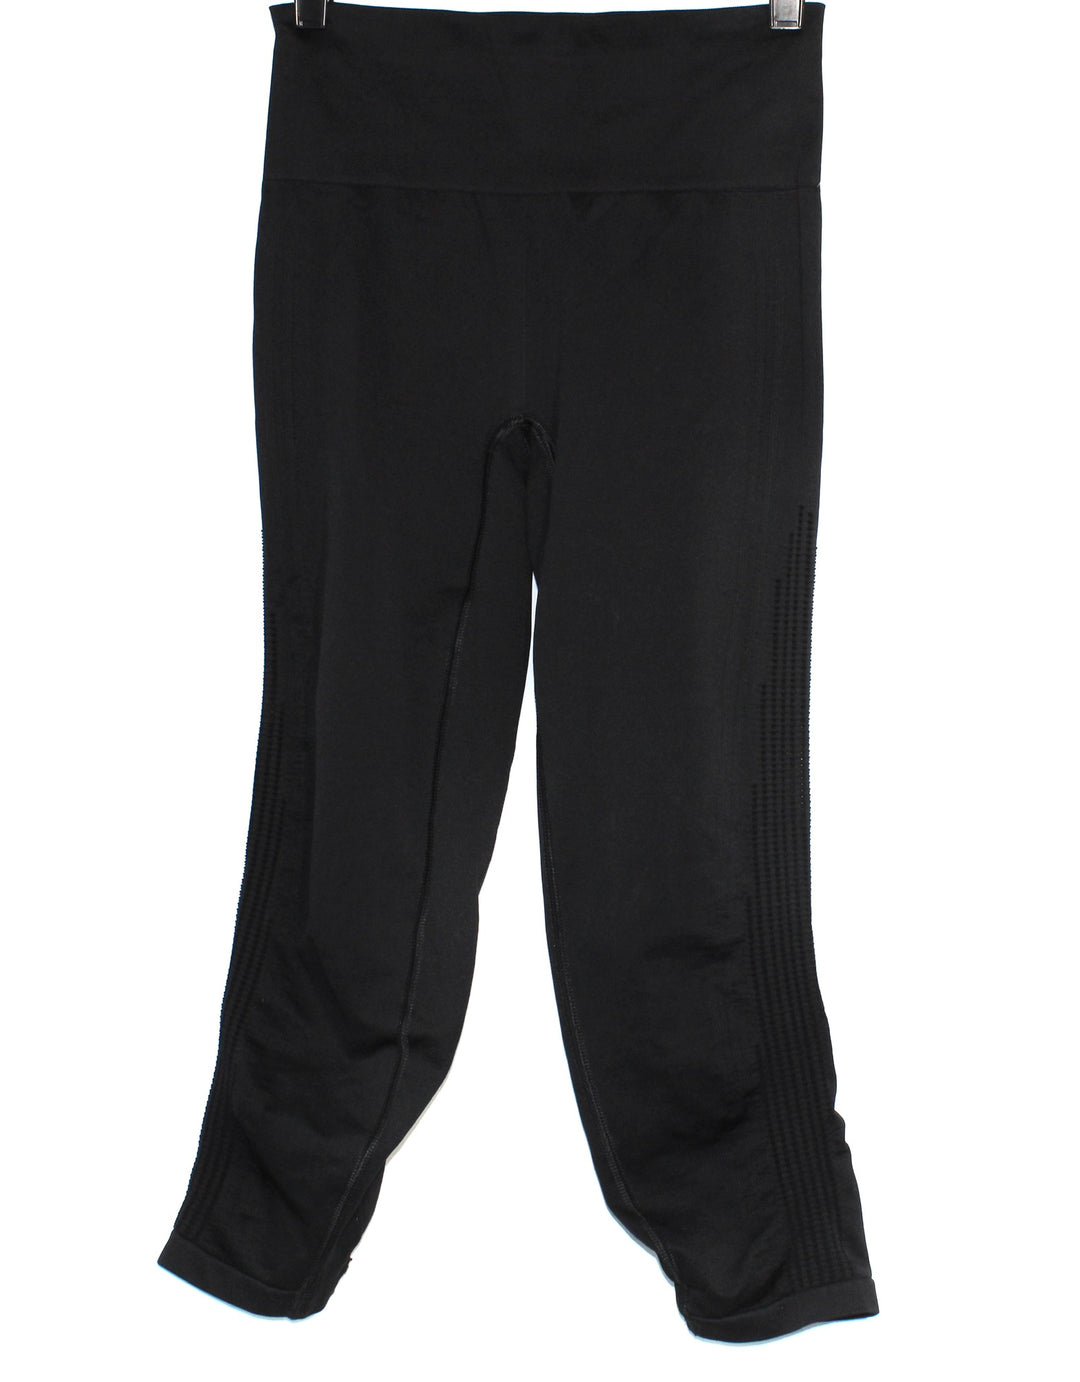 Primary Photo - BRAND: ATHLETA <BR>STYLE: ATHLETIC CAPRIS <BR>COLOR: BLACK <BR>SIZE: S <BR>SKU: 262-26275-57678